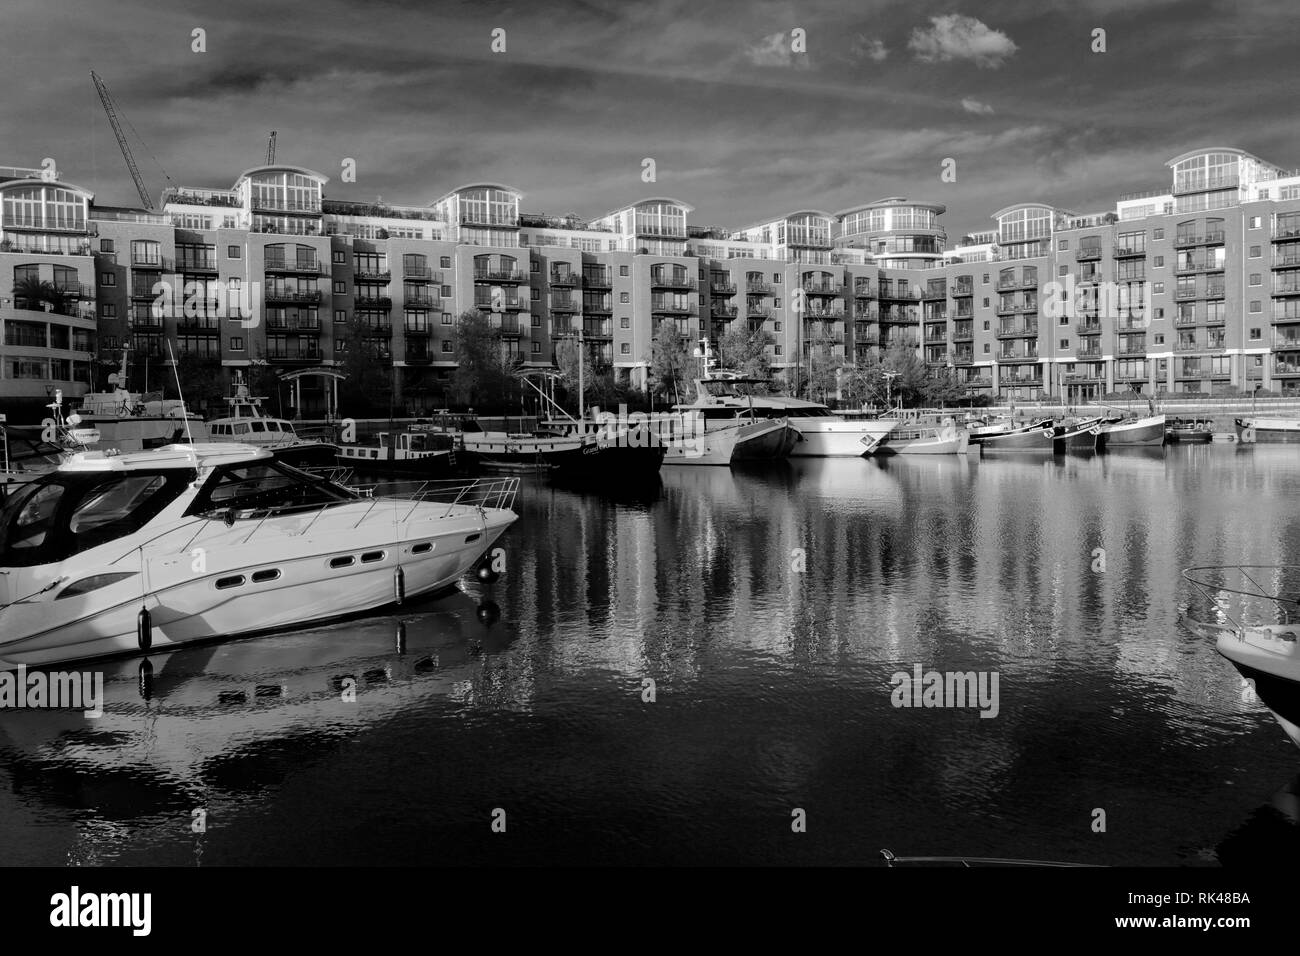 Boats in St Katherines dock, North Bank river Thames, London City, England, United Kingdom - Stock Image